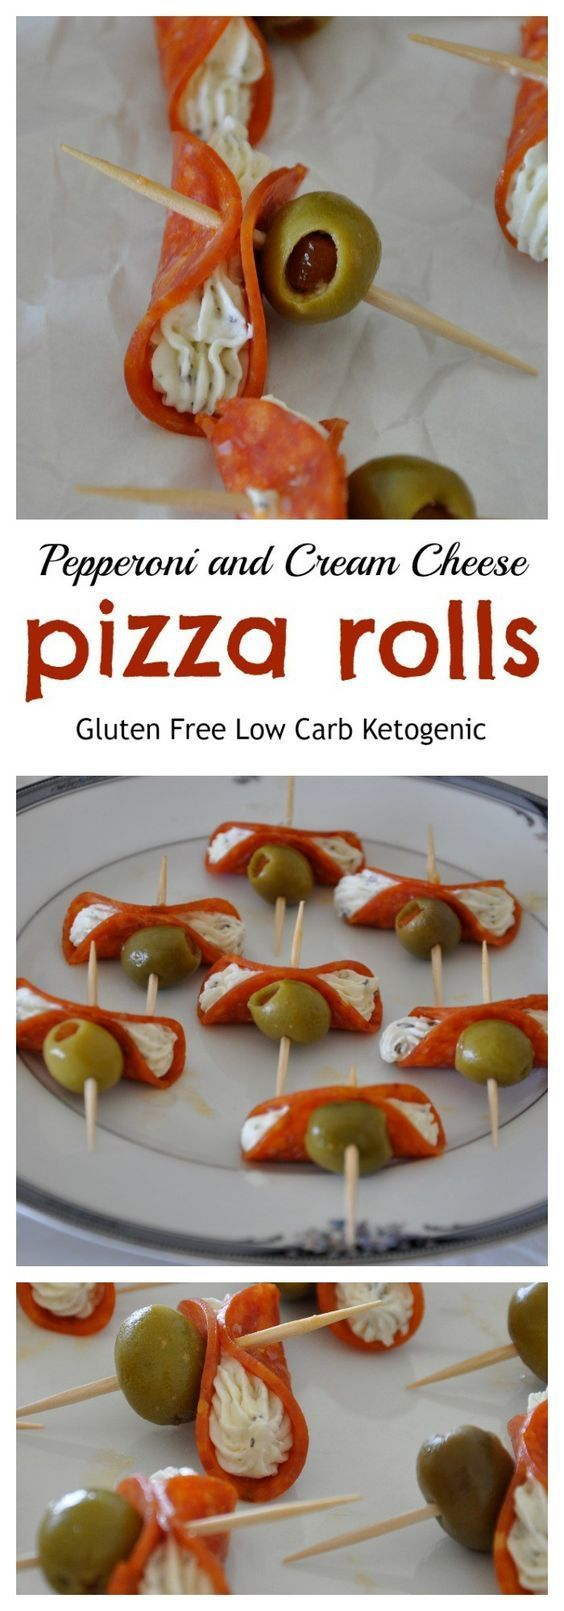 Pepperoni and Cream Cheese Pizza Rolls - Gluten Free, Low Carb from knowgluten.me   Sponsored by HORMEL® Pepperoni. #PEPItUP #ad